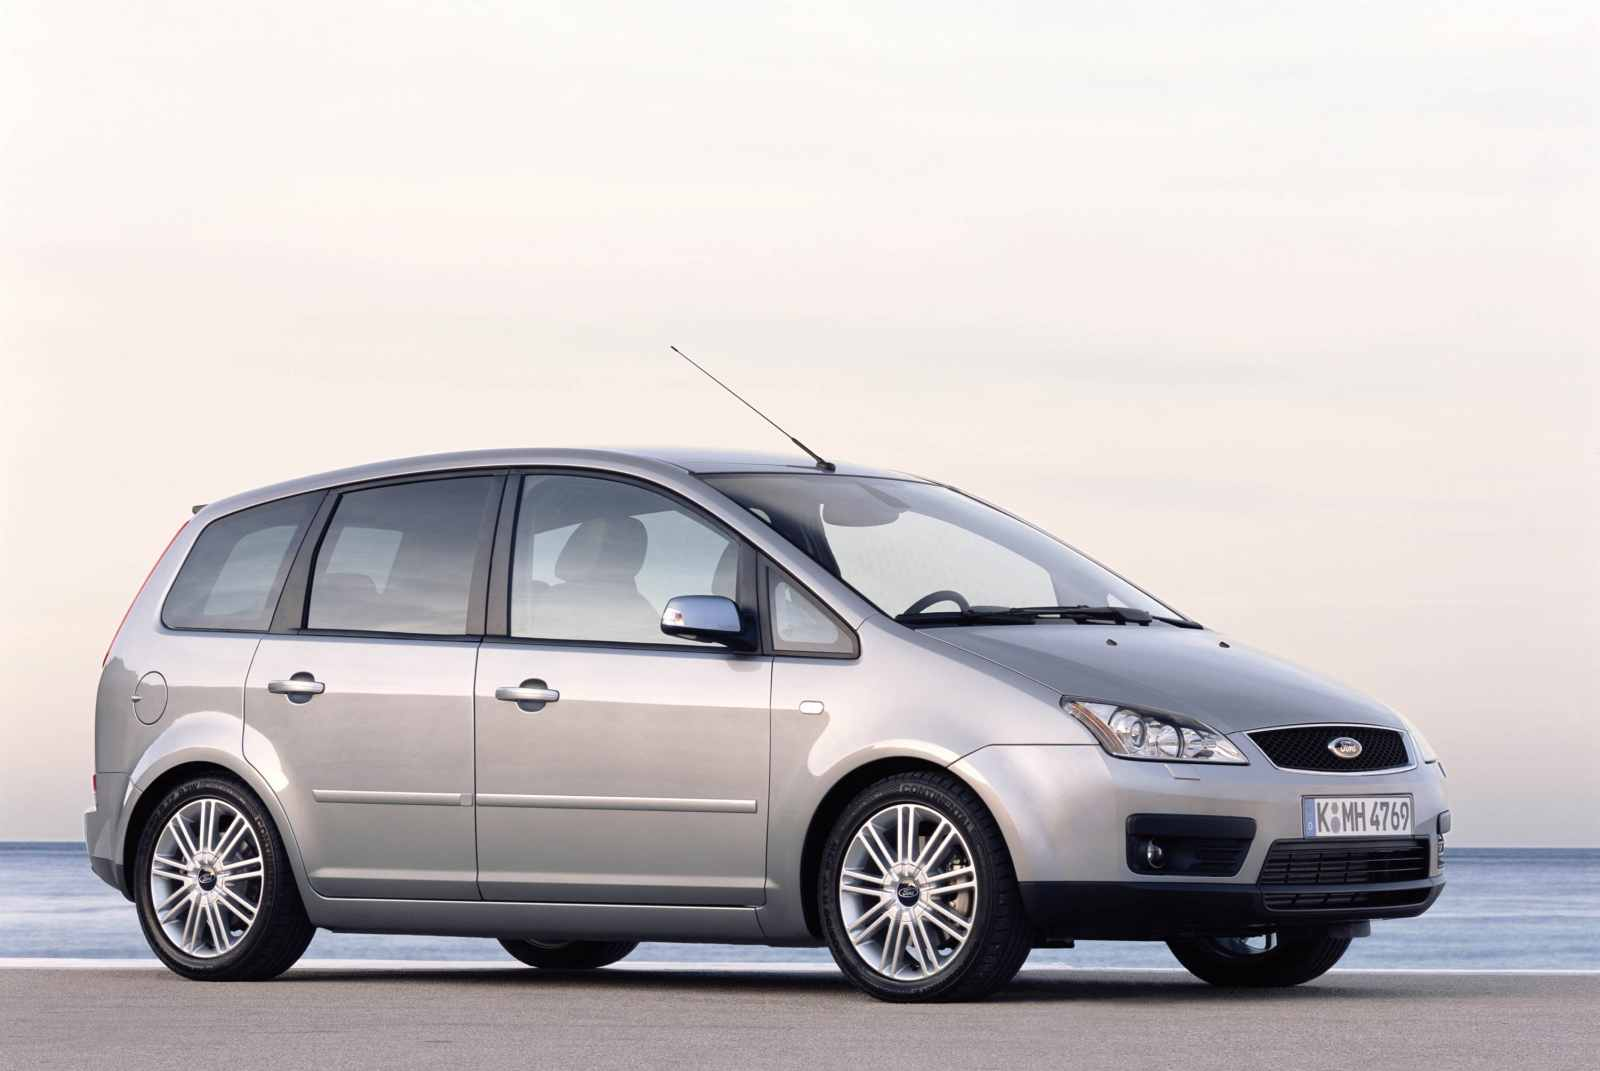 Ford focus c max cng photo 04